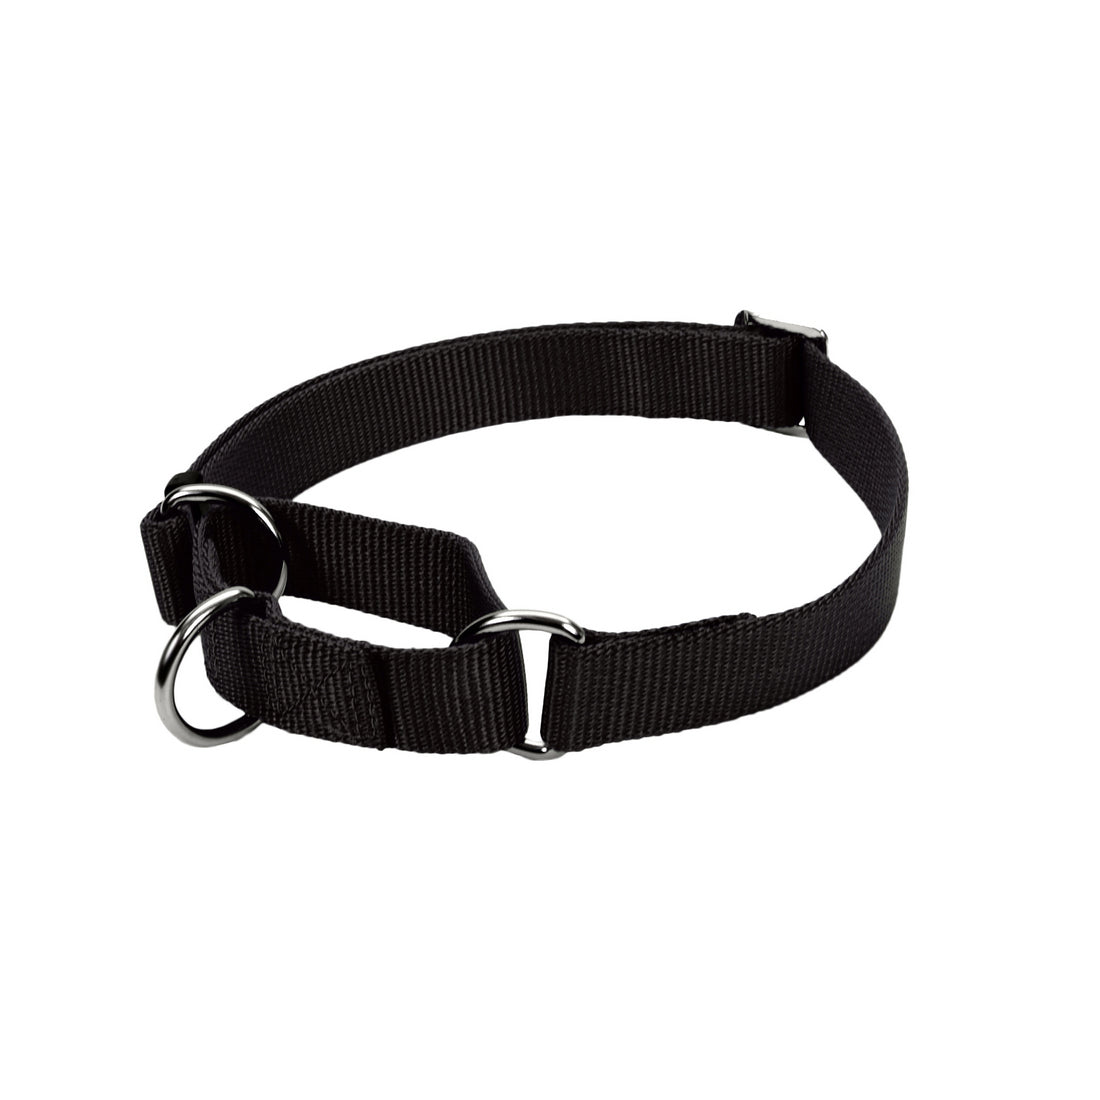 "Coastal No Slip Martingale Adjustable Collar - 20"", Black"